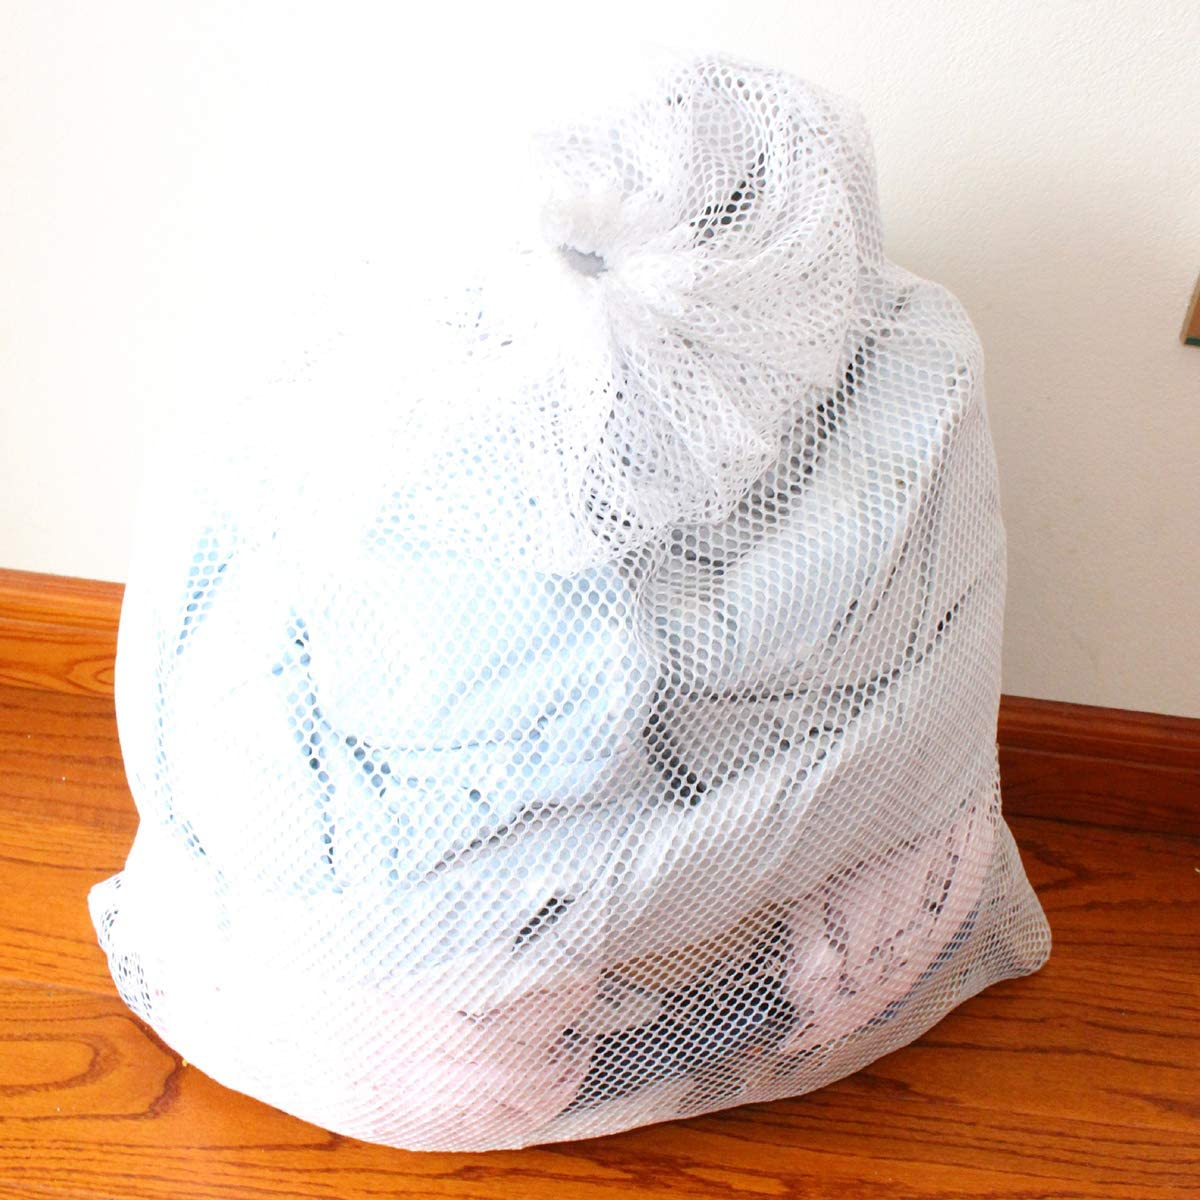 DERCLIVE Mesh Laundry Bag Dirty Clothes Storage Bag (6090)